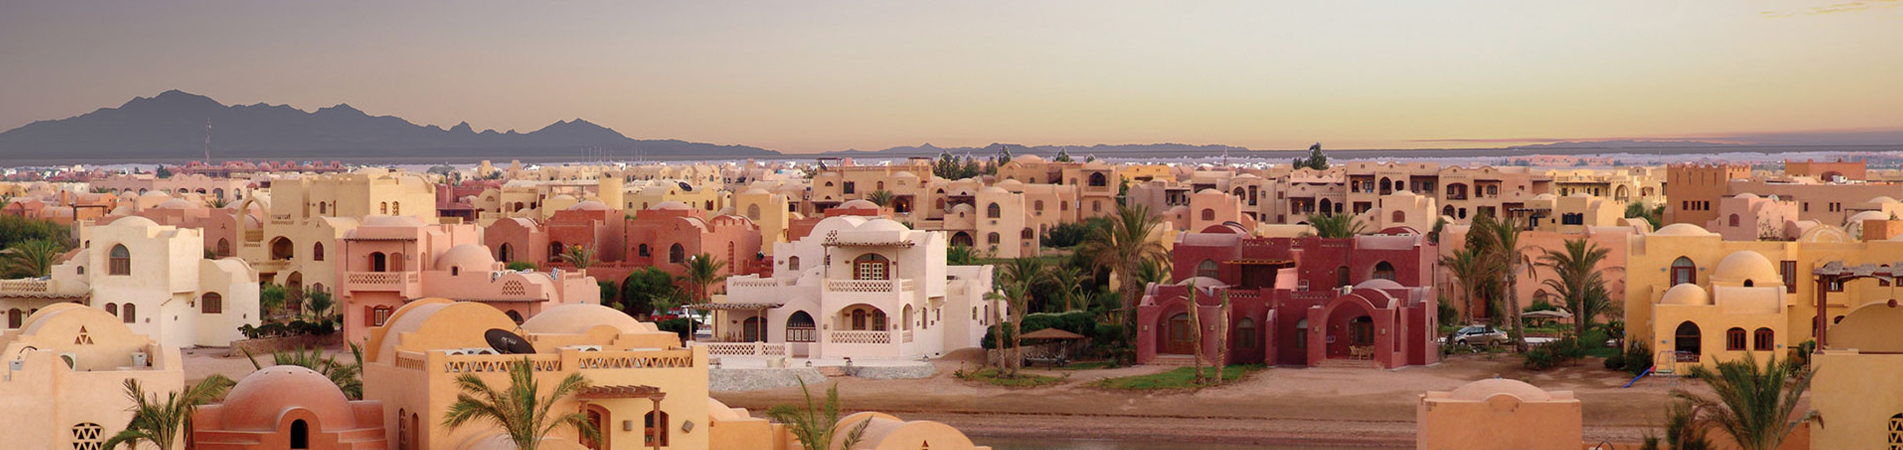 El-Gouna Red Sea